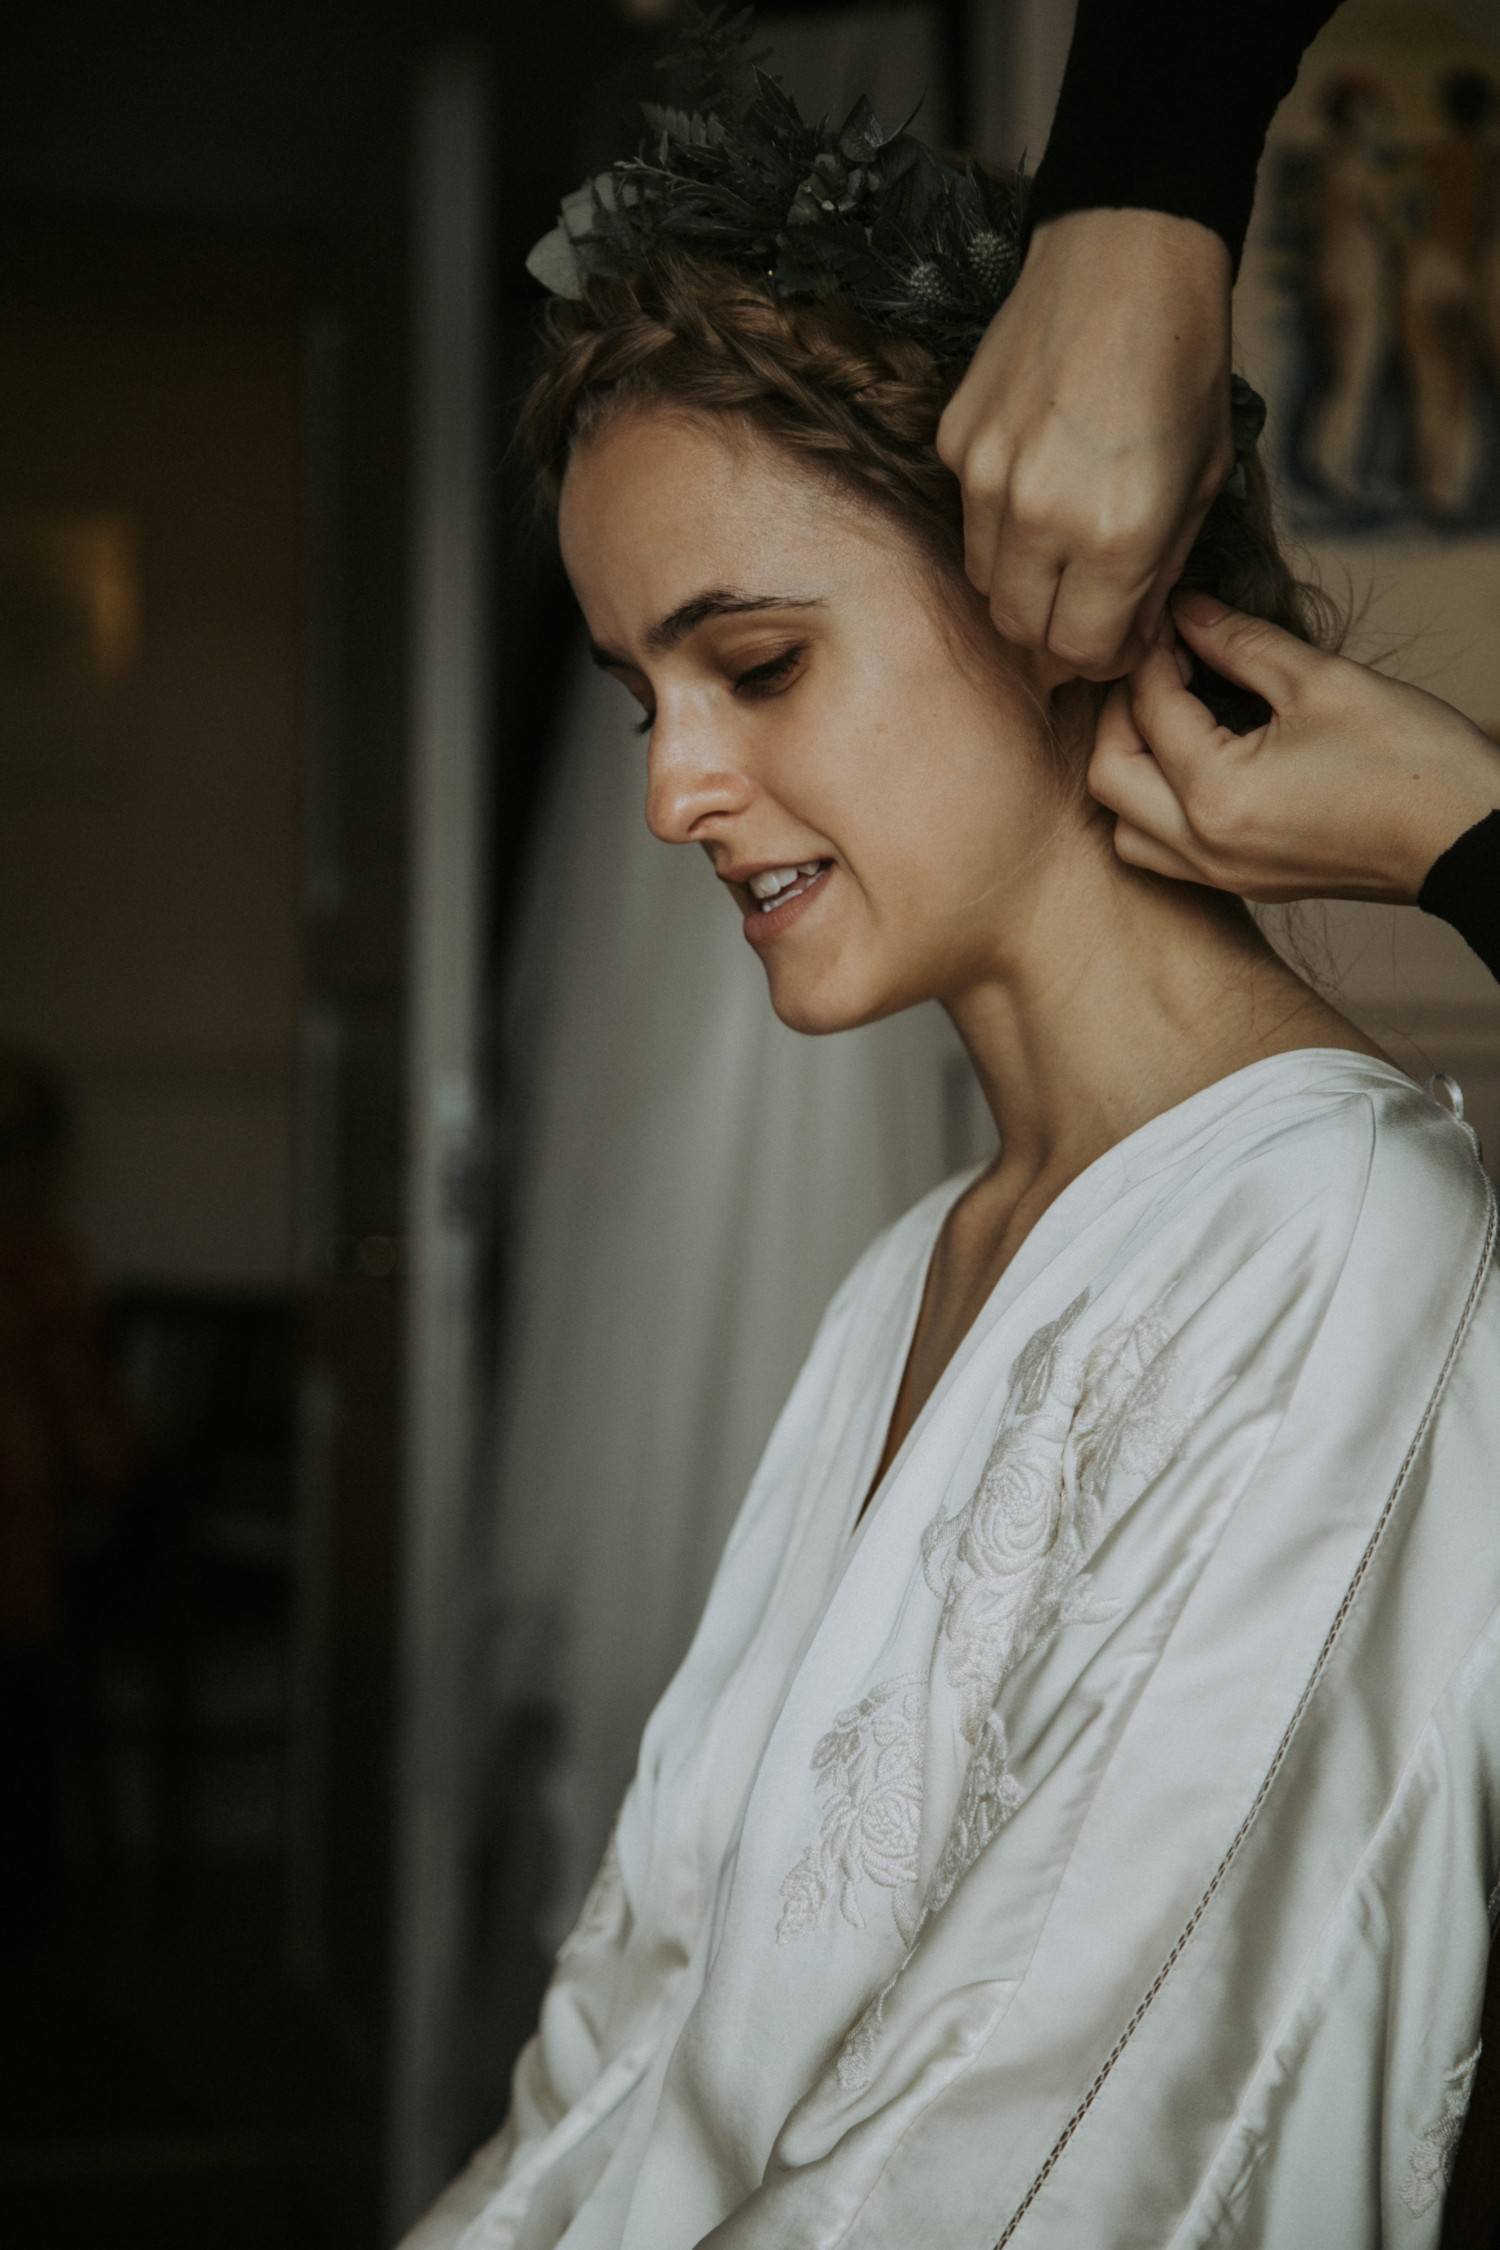 Cathrine Widunok Wichmand, Rockpaperdresses, getting ready for wedding, bryllup kimono, H&M Conscious Exclusive